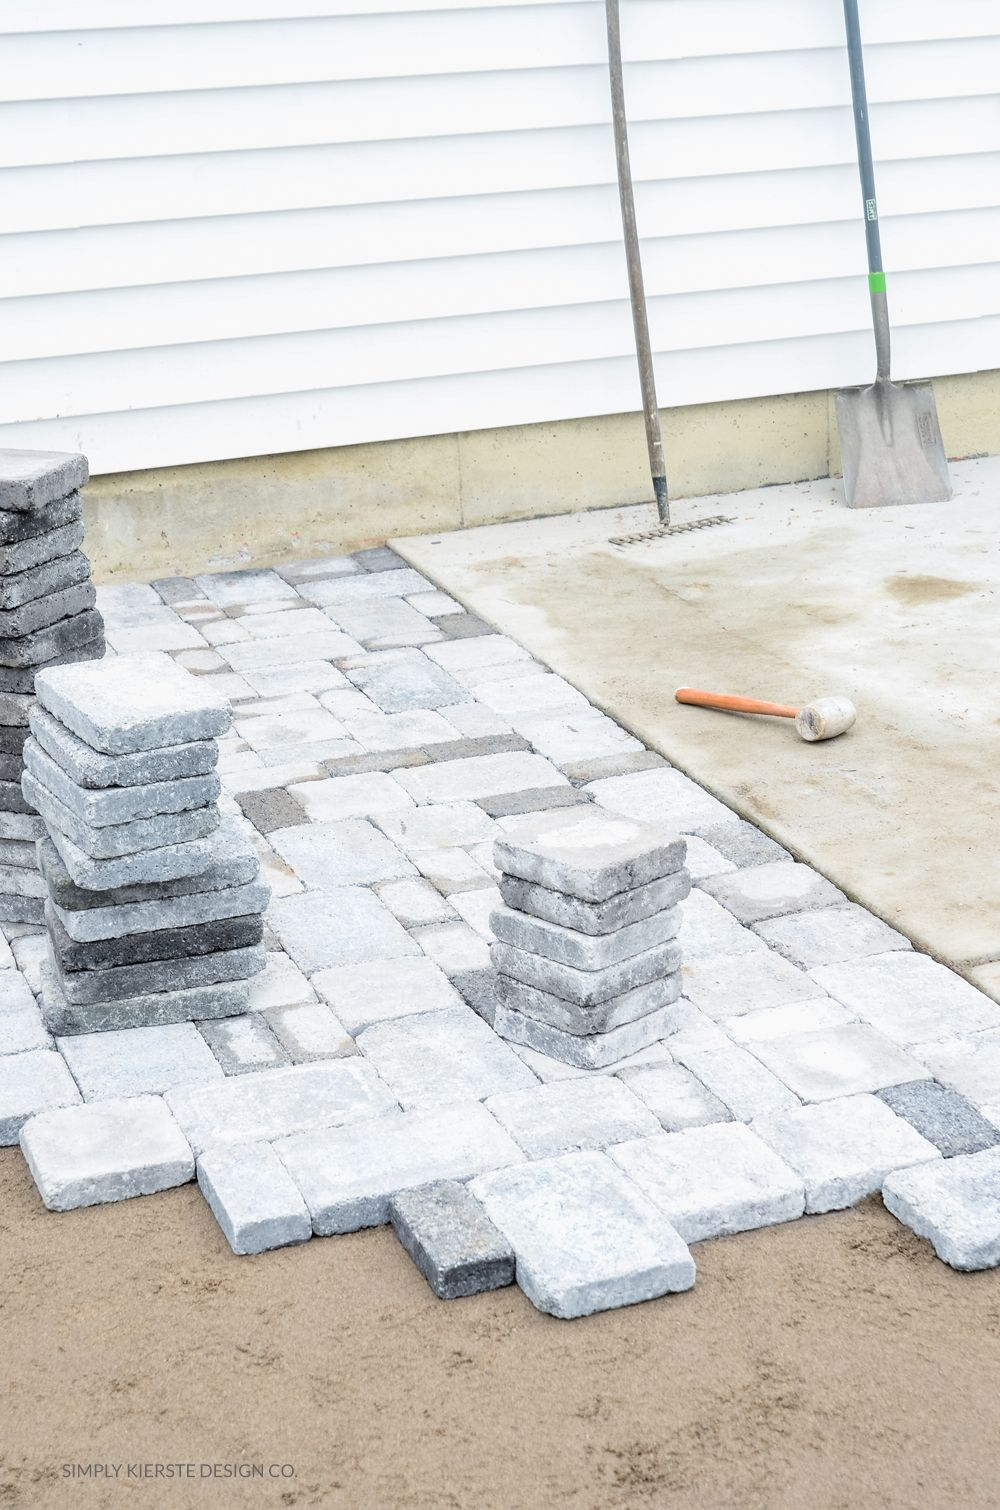 Brick Paver Patio With Fire Pit Cost: DIY Paver Patio: Weekend Summer Backyard Project